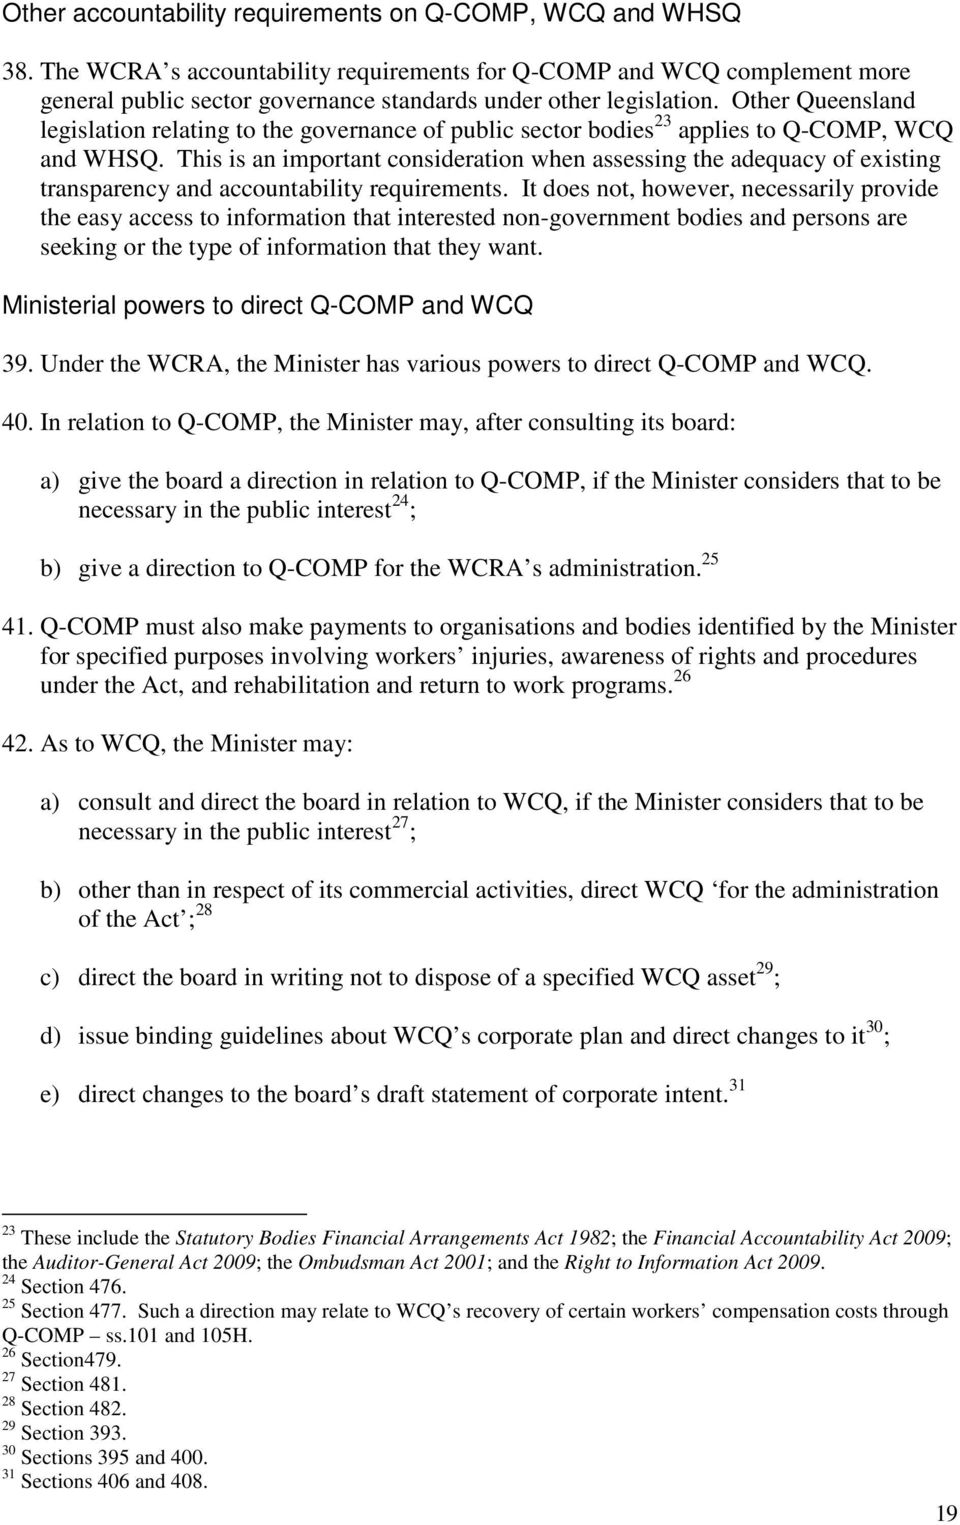 Other Queensland legislation relating to the governance of public sector bodies 23 applies to Q-COMP, WCQ and WHSQ.